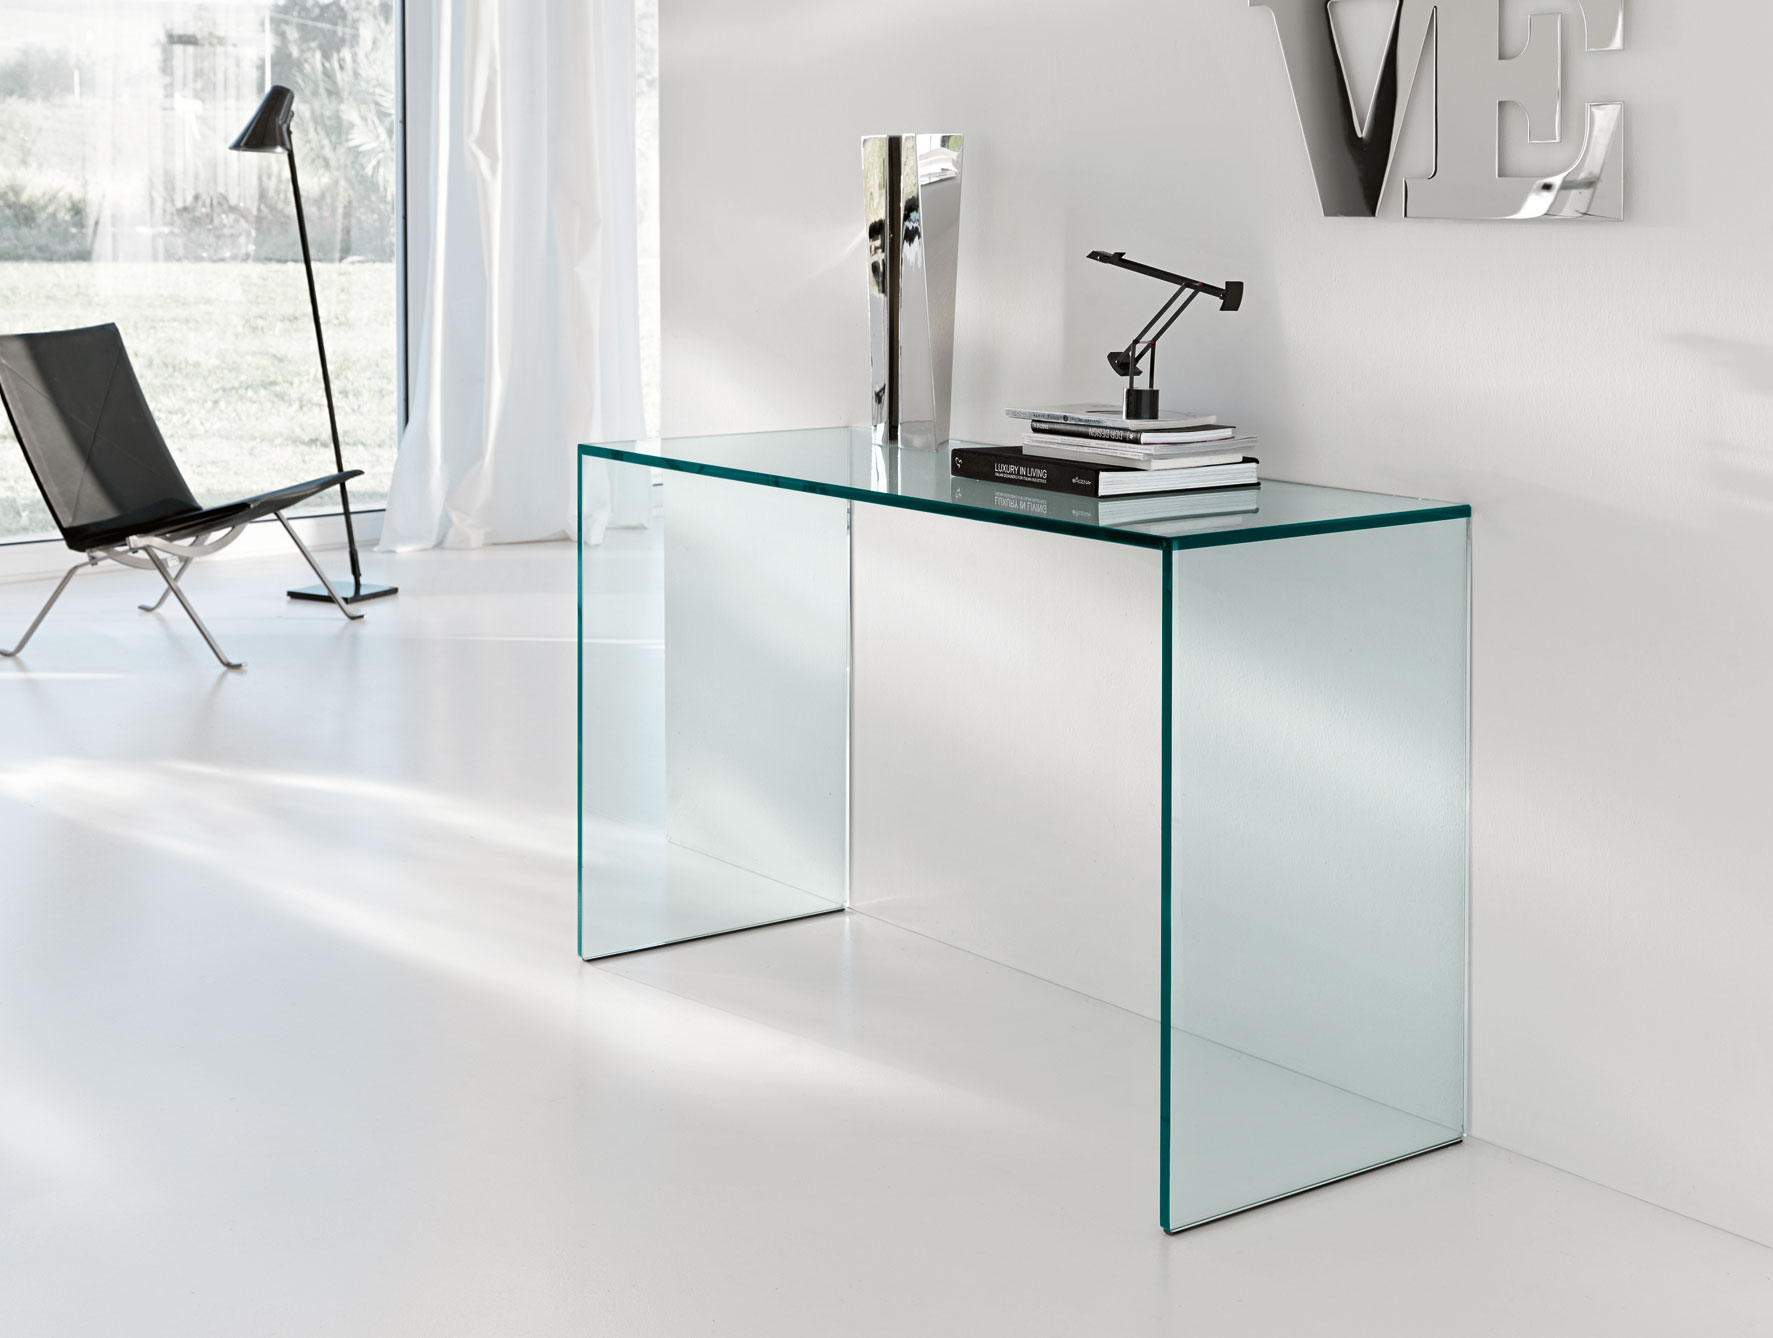 U201cTransparent Objects Can Be Chic And Functional At The Same Timeu201d